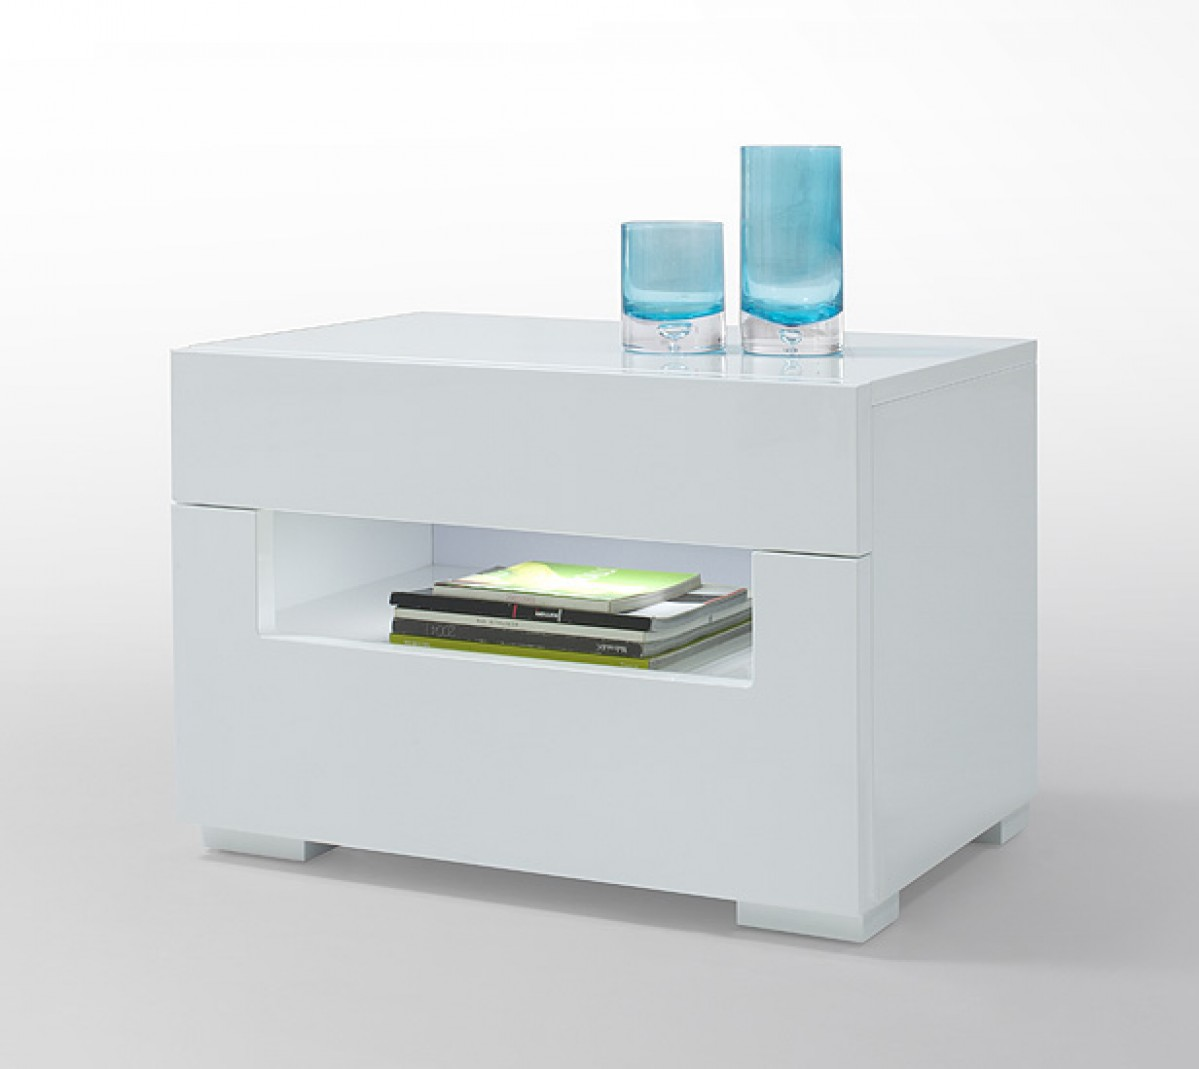 modrest ceres  modern led white lacquer nightstand -